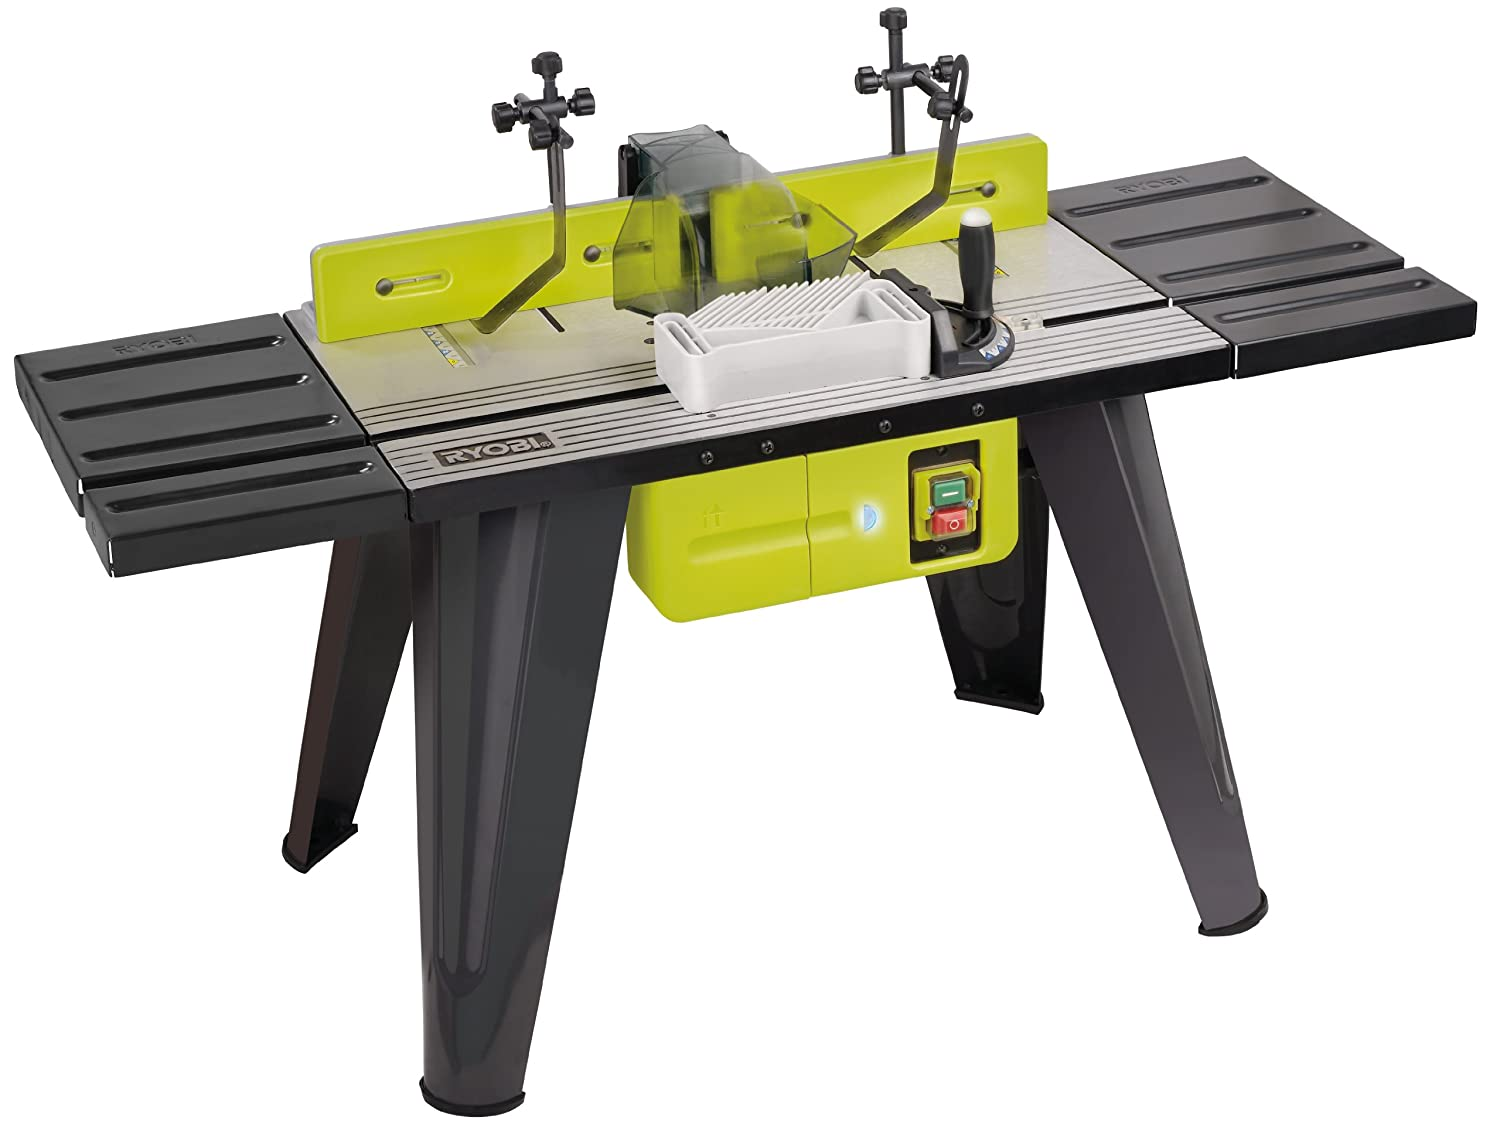 Ryobi router table old version amazon diy tools keyboard keysfo